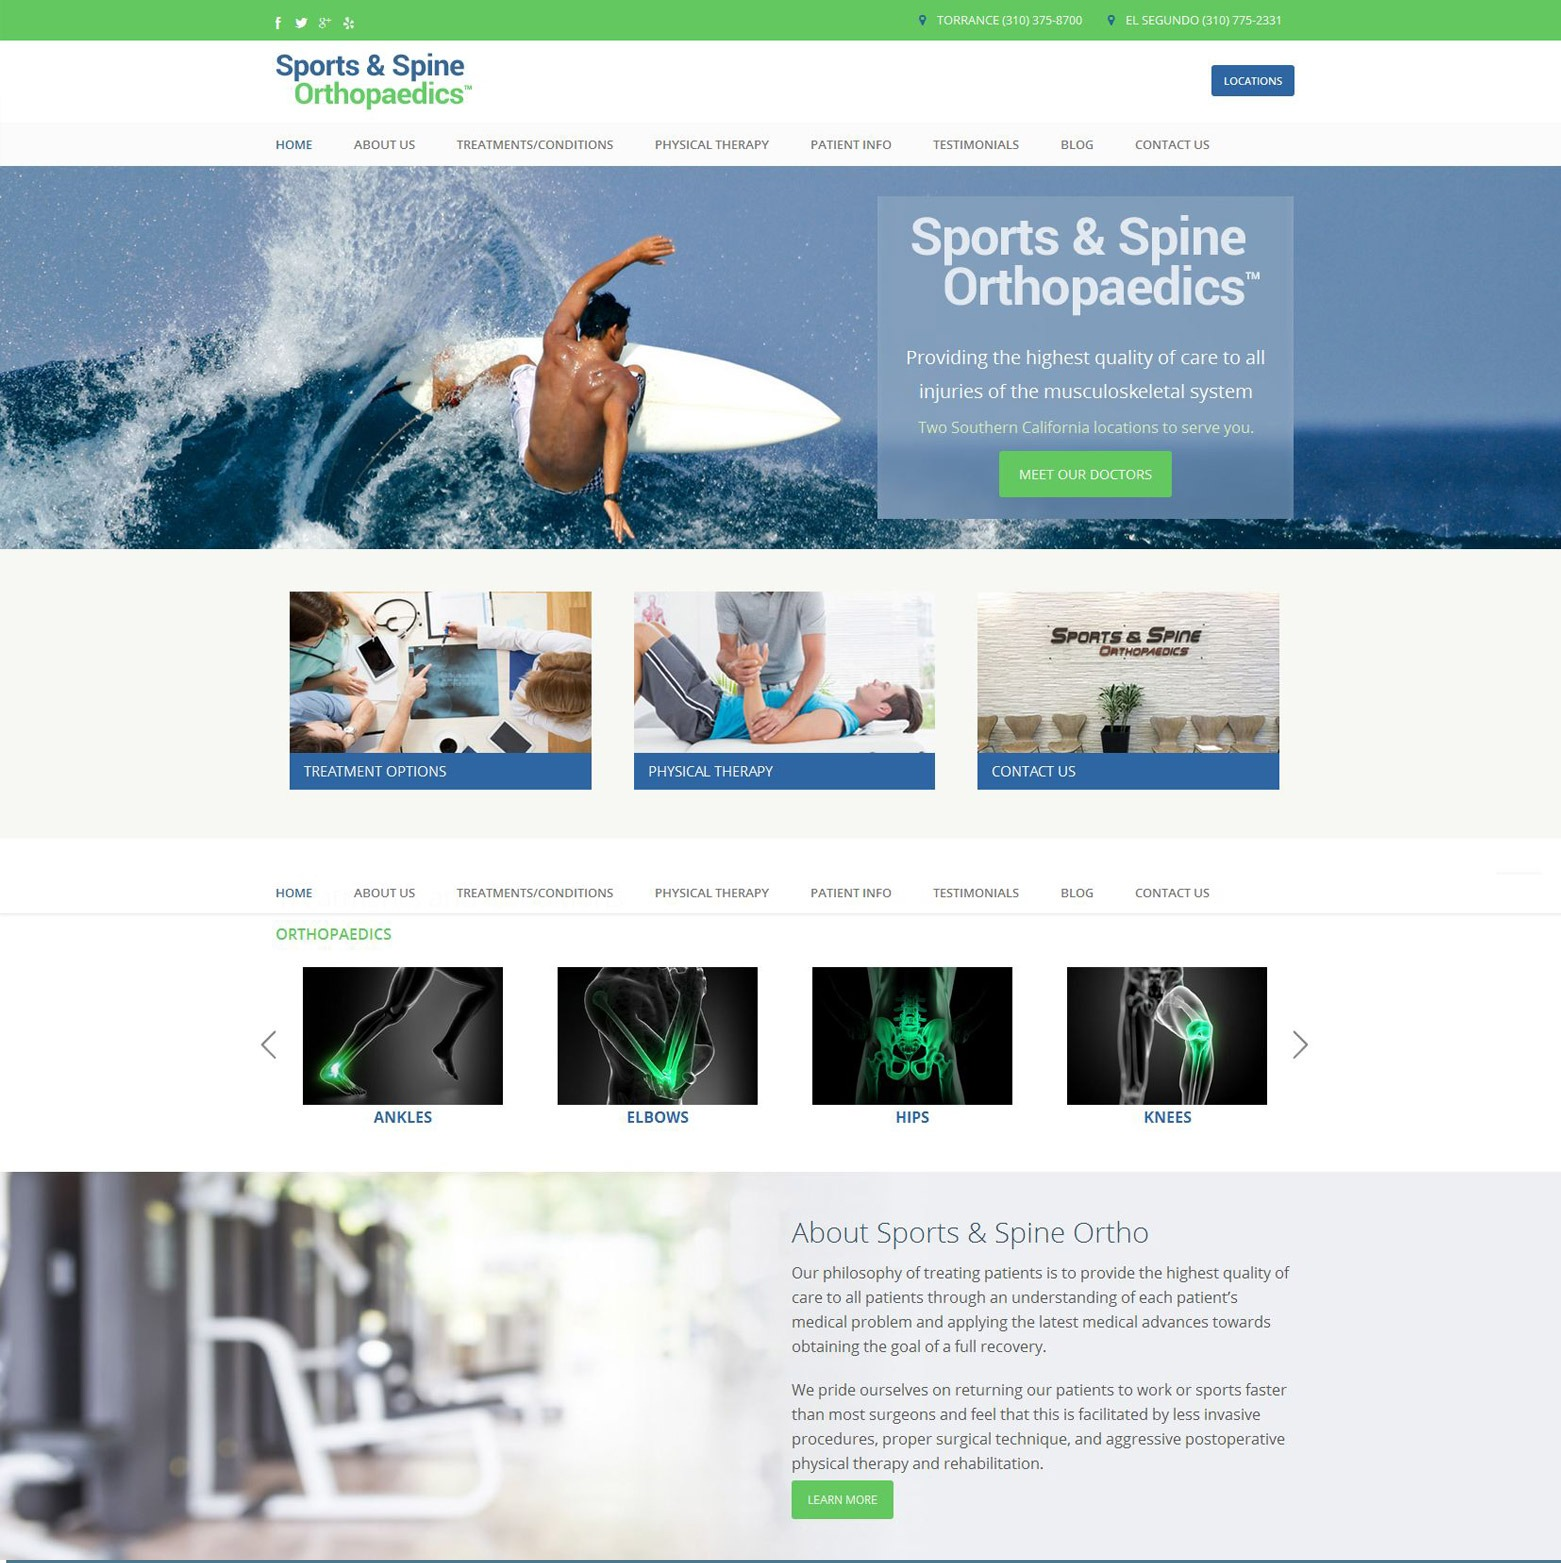 LA Angeles Sports Medicine Web Design Company